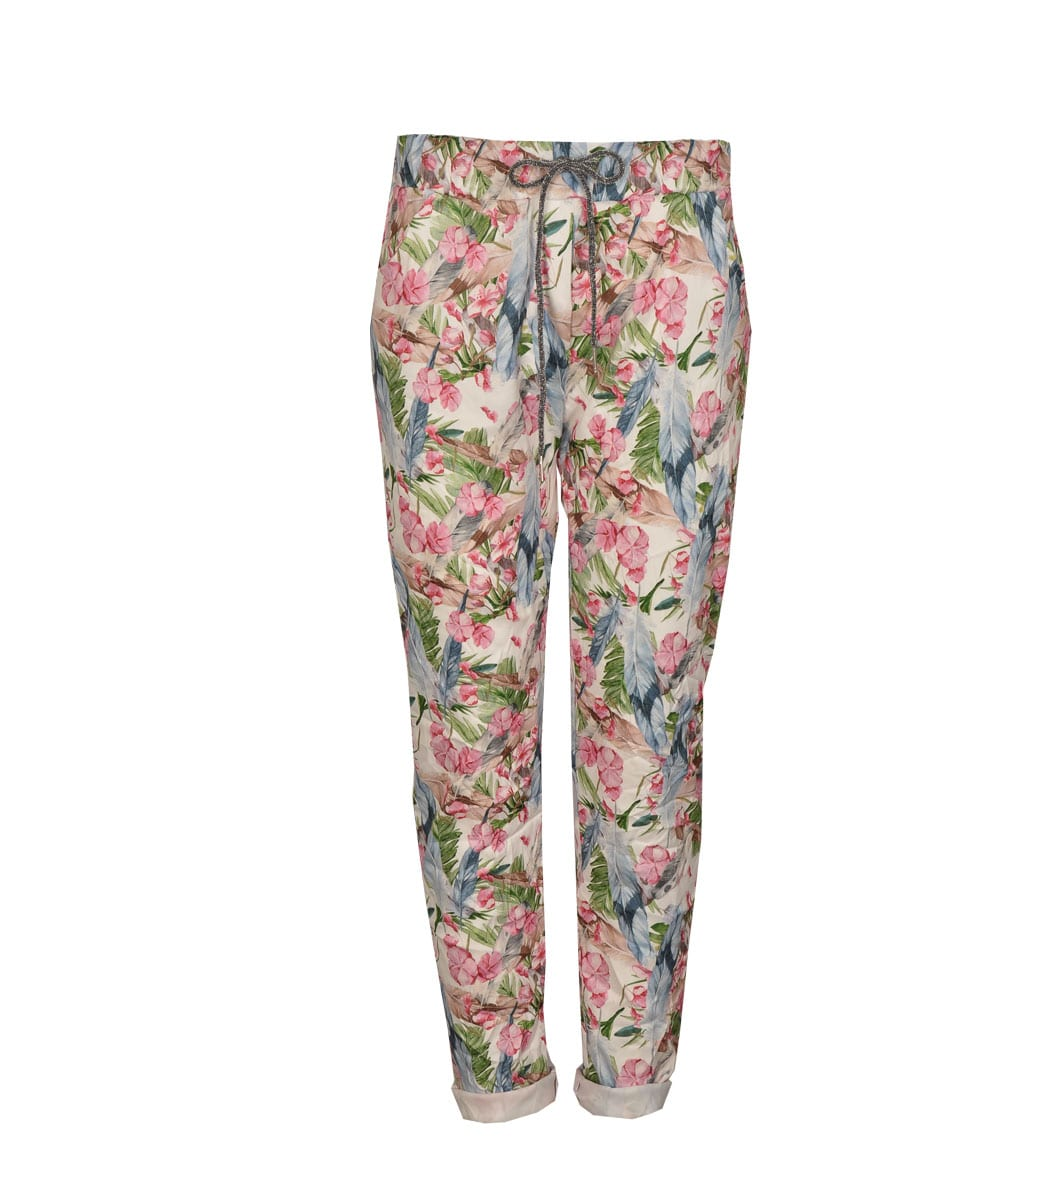 Feathers and floral printed pants